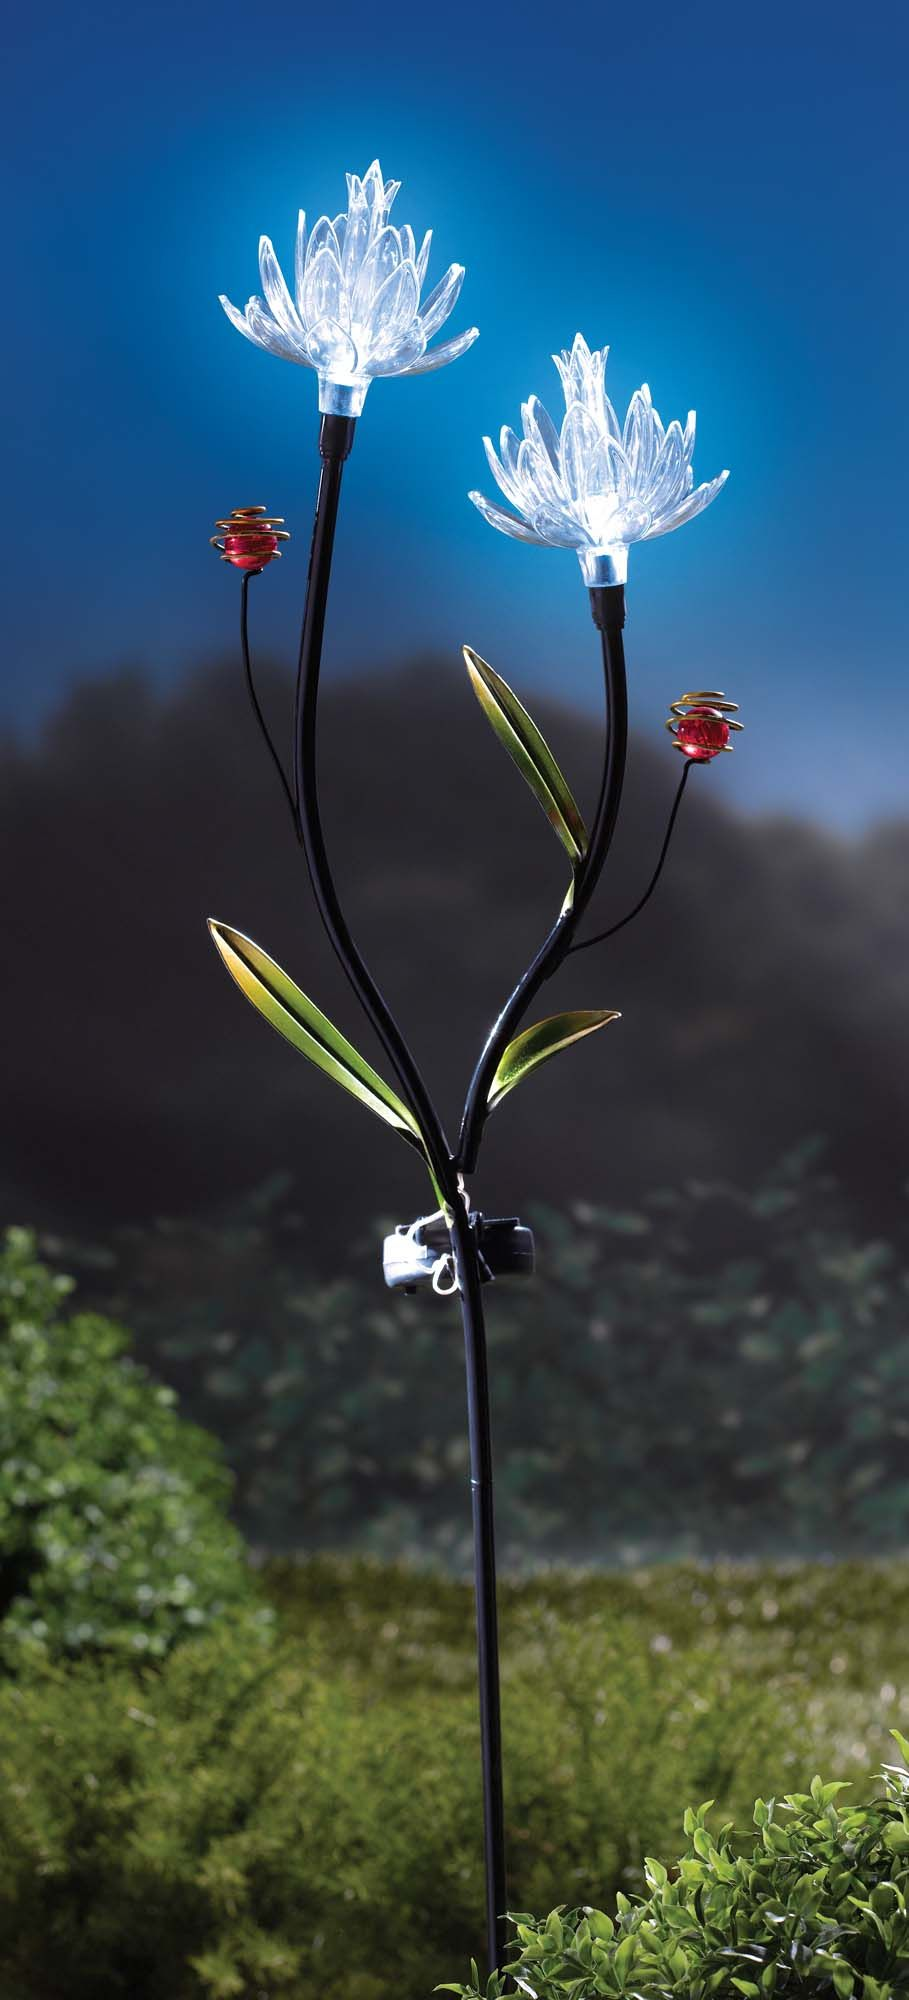 create a whimsical atmosphere in your outdoor space with this lightup garden stake